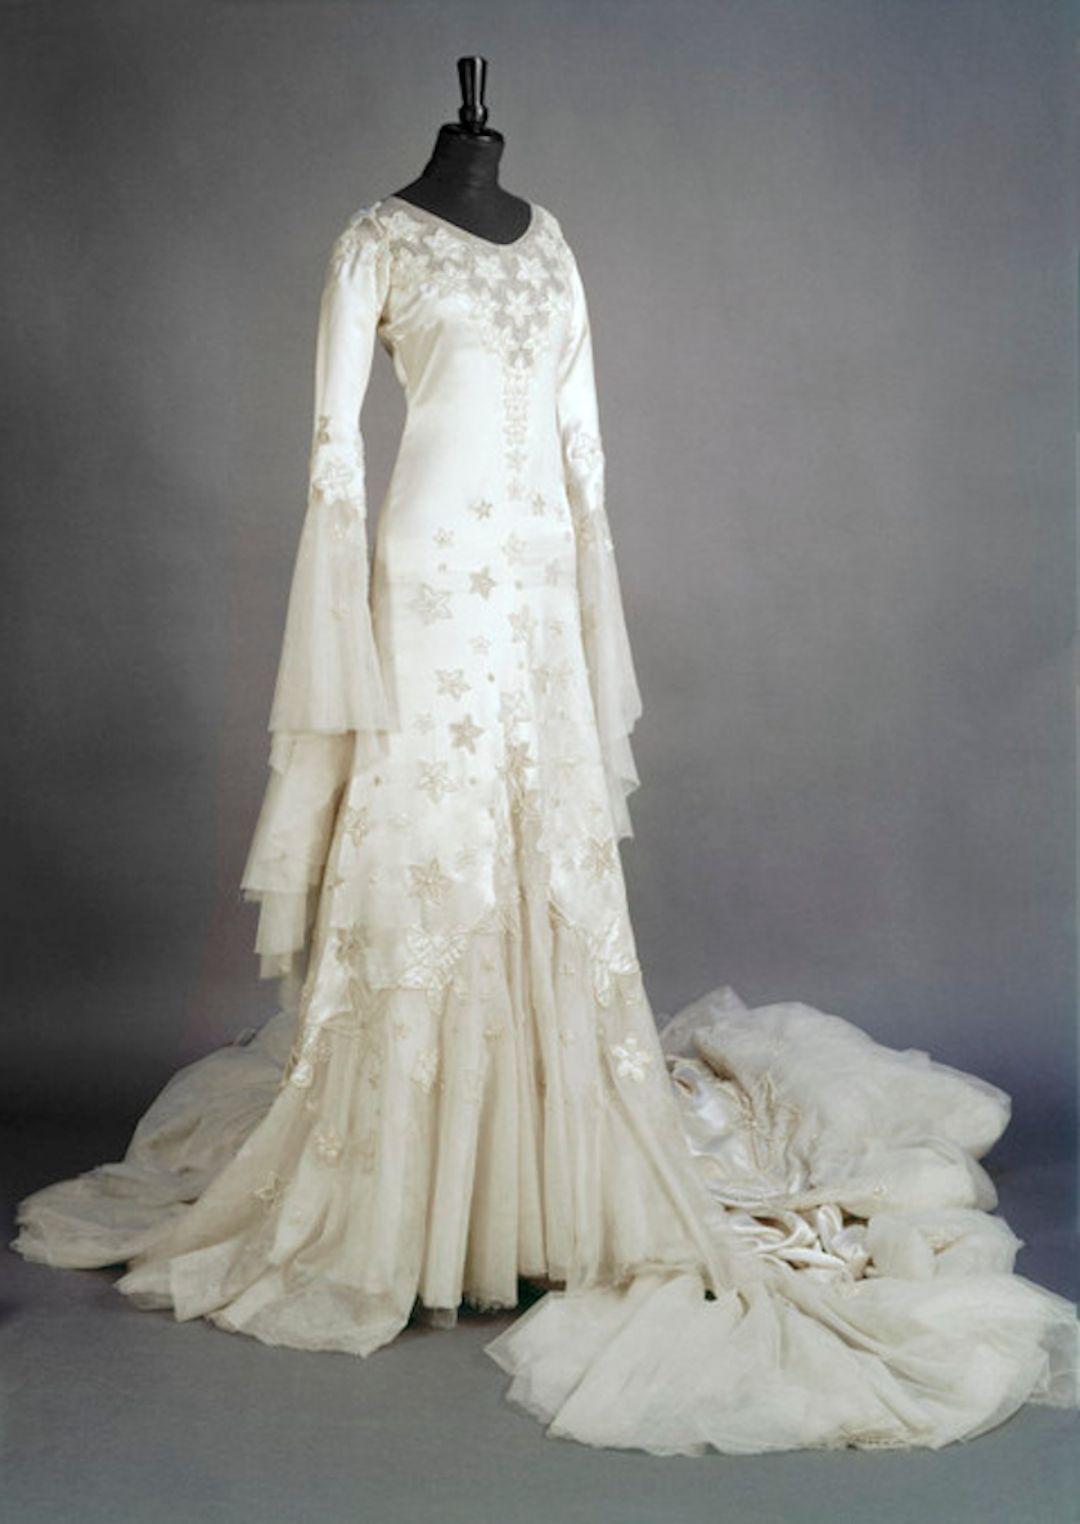 Norman Hartnell - 1933 - Wedding dress worn by Margaret Whigham ...